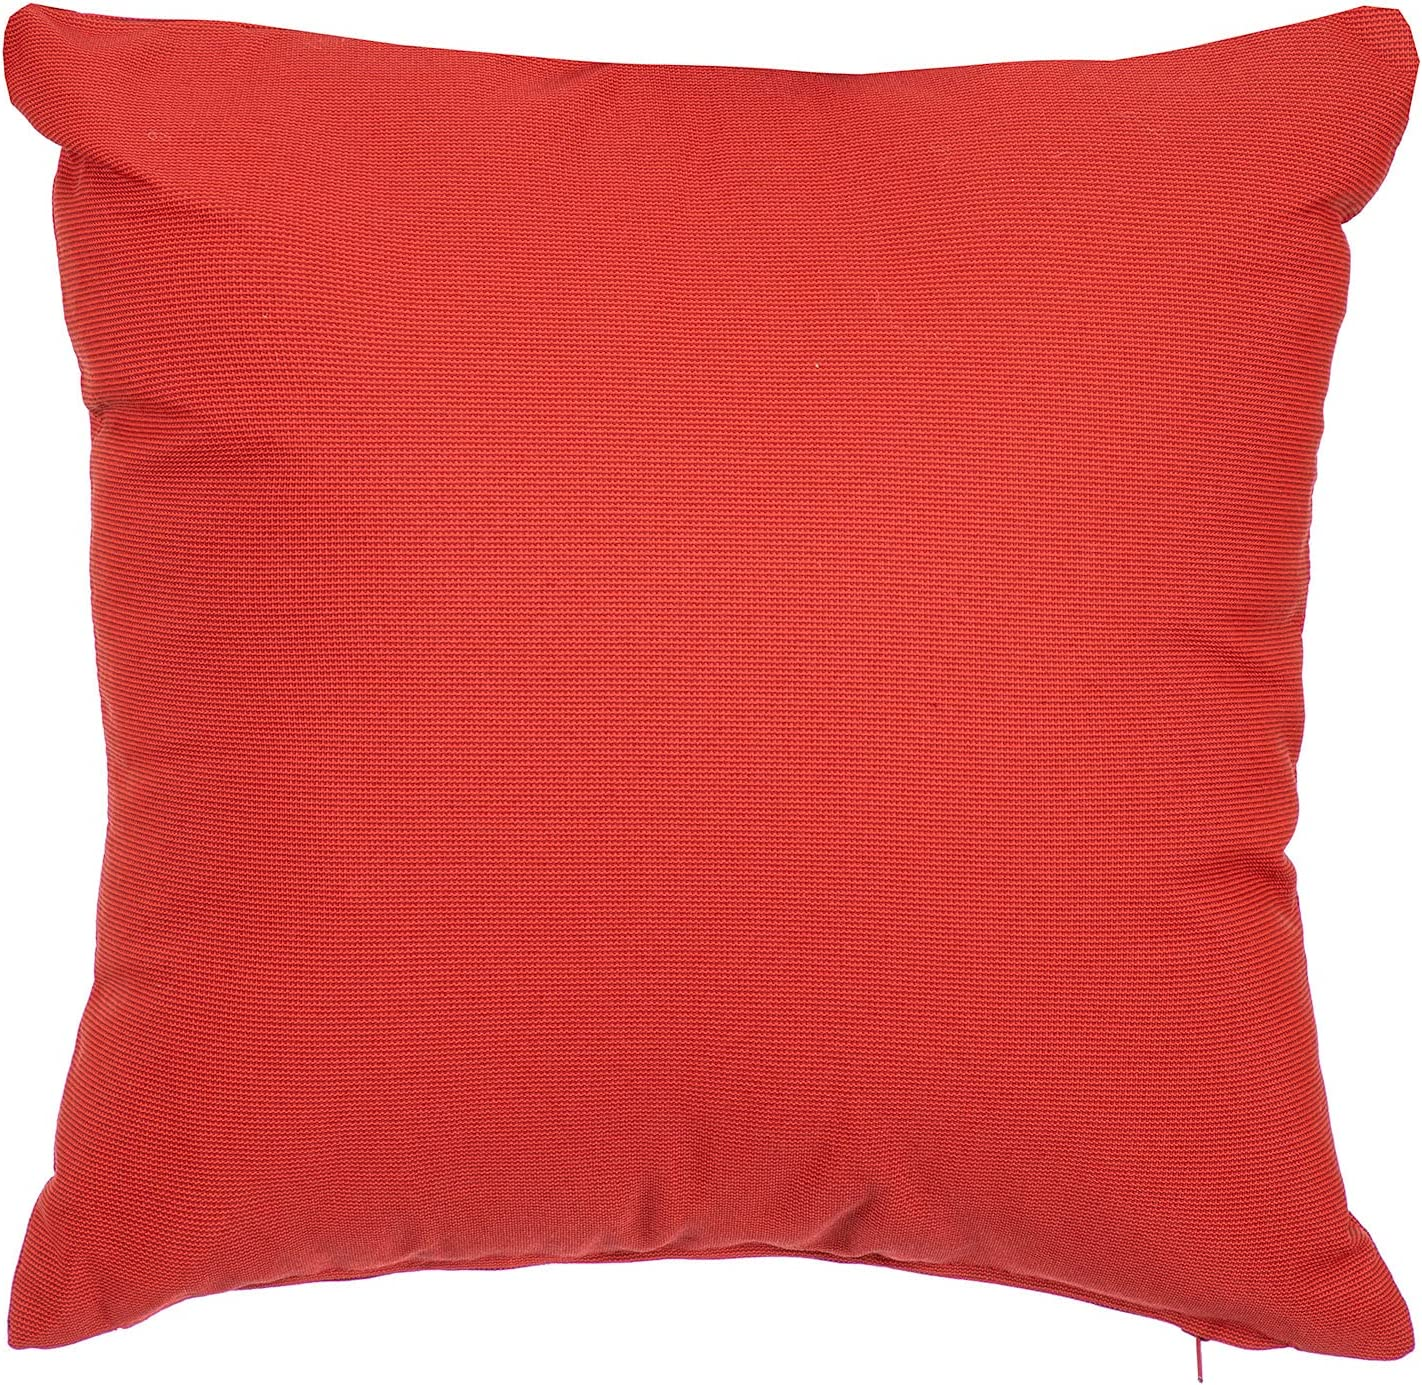 Courier shipping free Gouchee Weekly update Home Inc. Soleil red Cushion